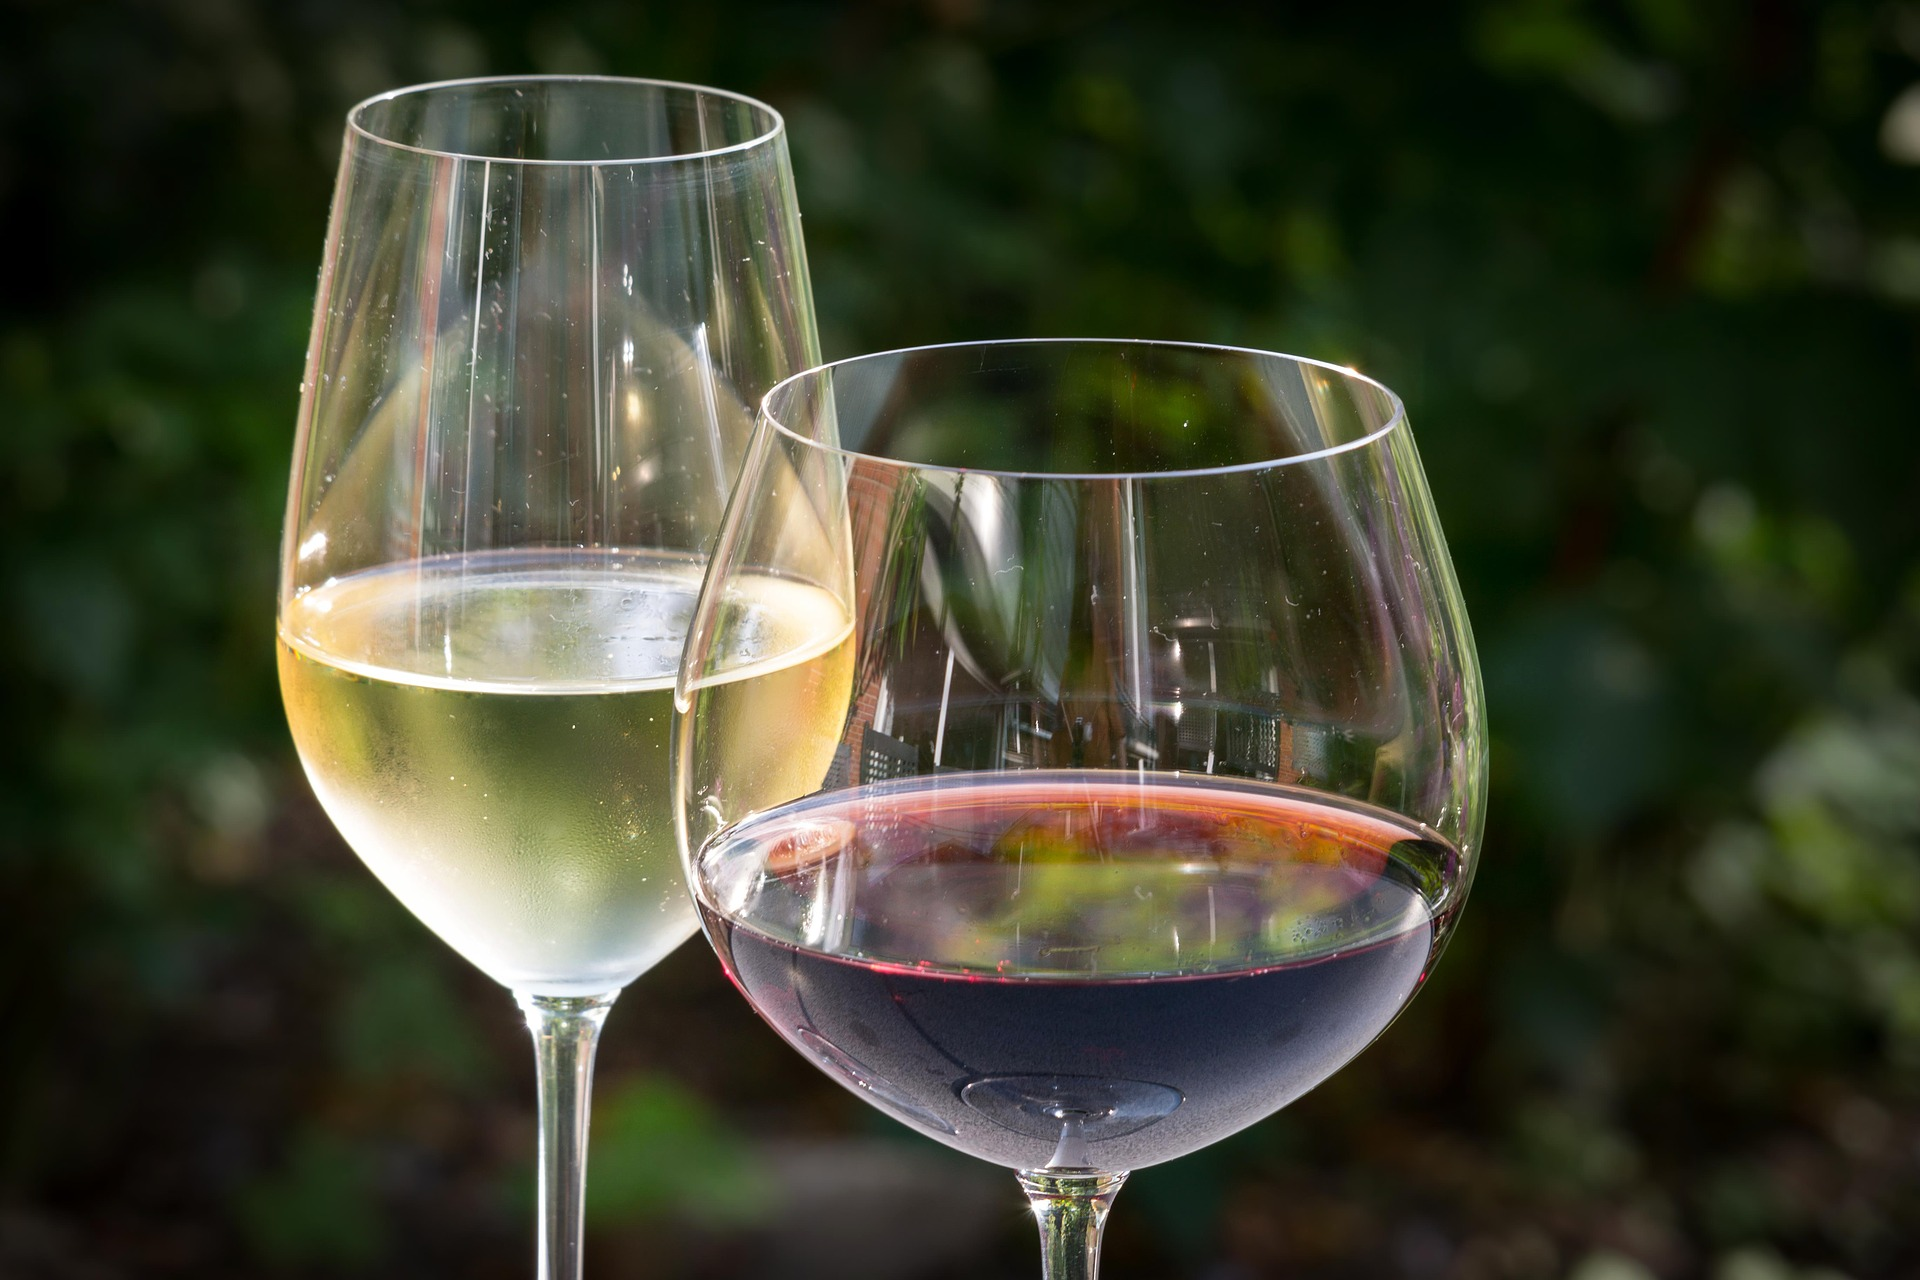 try a variety of wines from Heart of The Desert